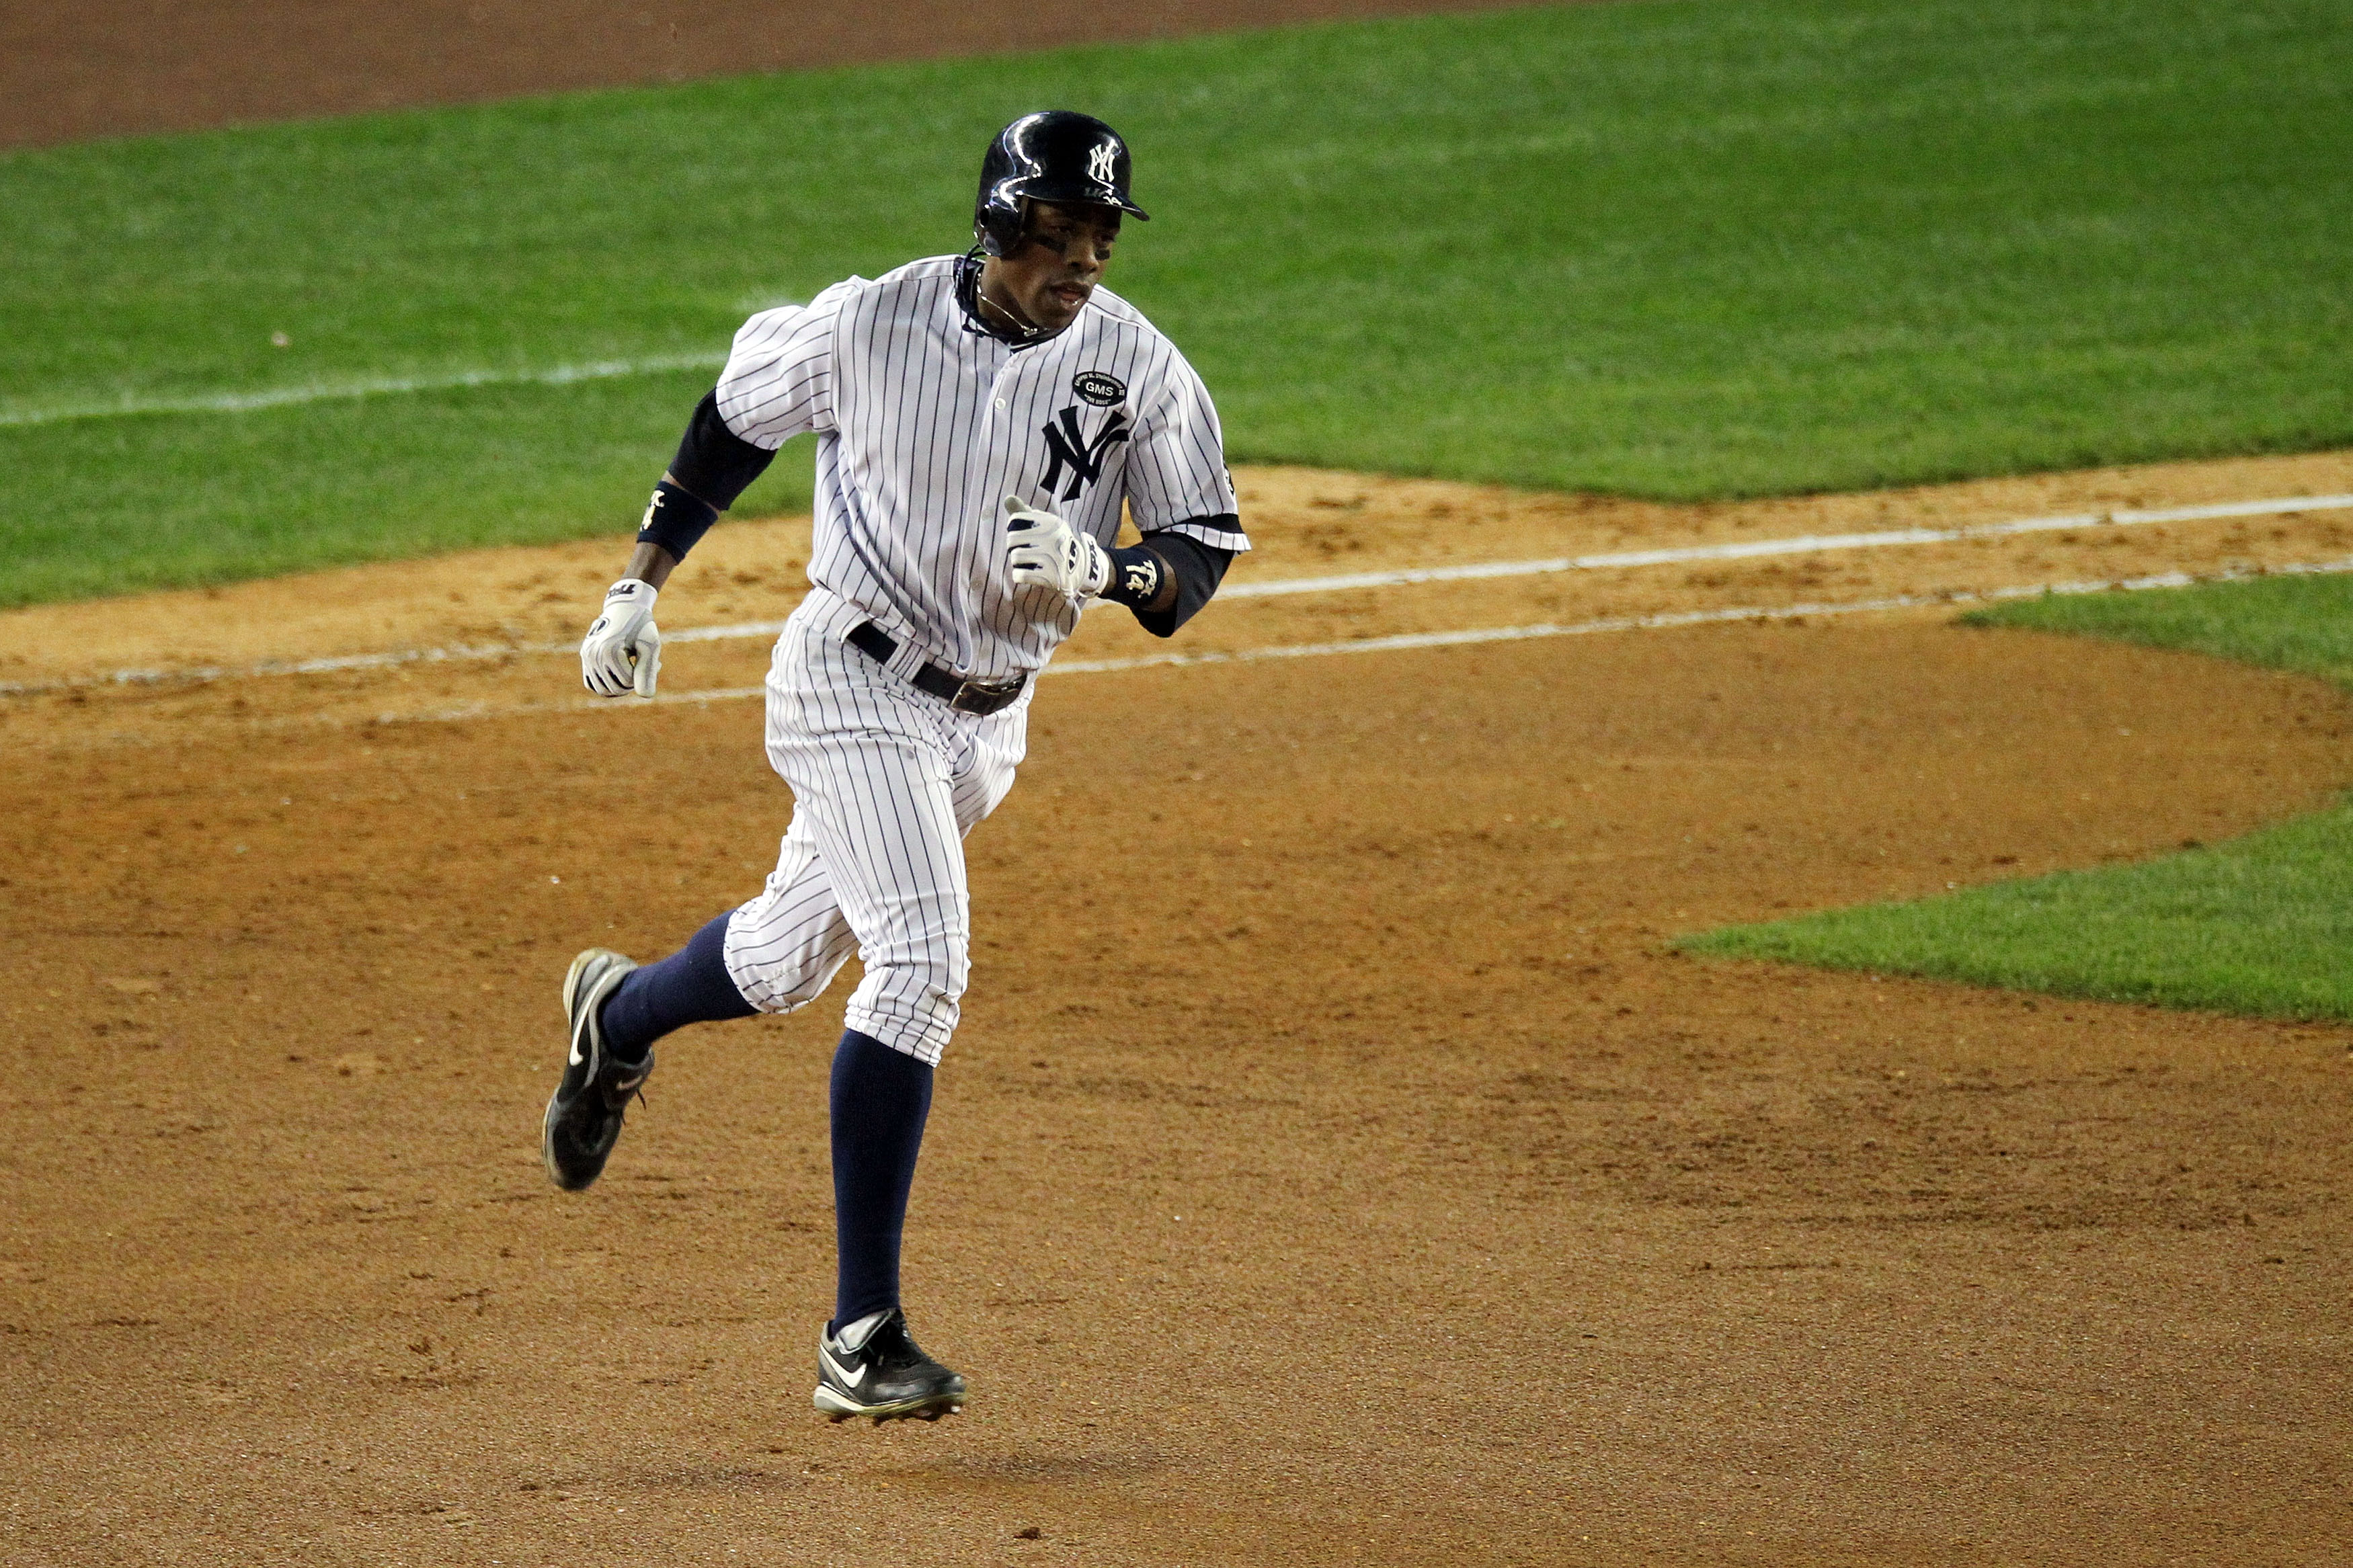 NEW YORK - OCTOBER 20:  Curtis Granderson #14 of the New York Yankees runs the bases on his solo home run in the bottom of the eighth inning against the Texas Rangers in Game Five of the ALCS during the 2010 MLB Playoffs at Yankee Stadium on October 20, 2